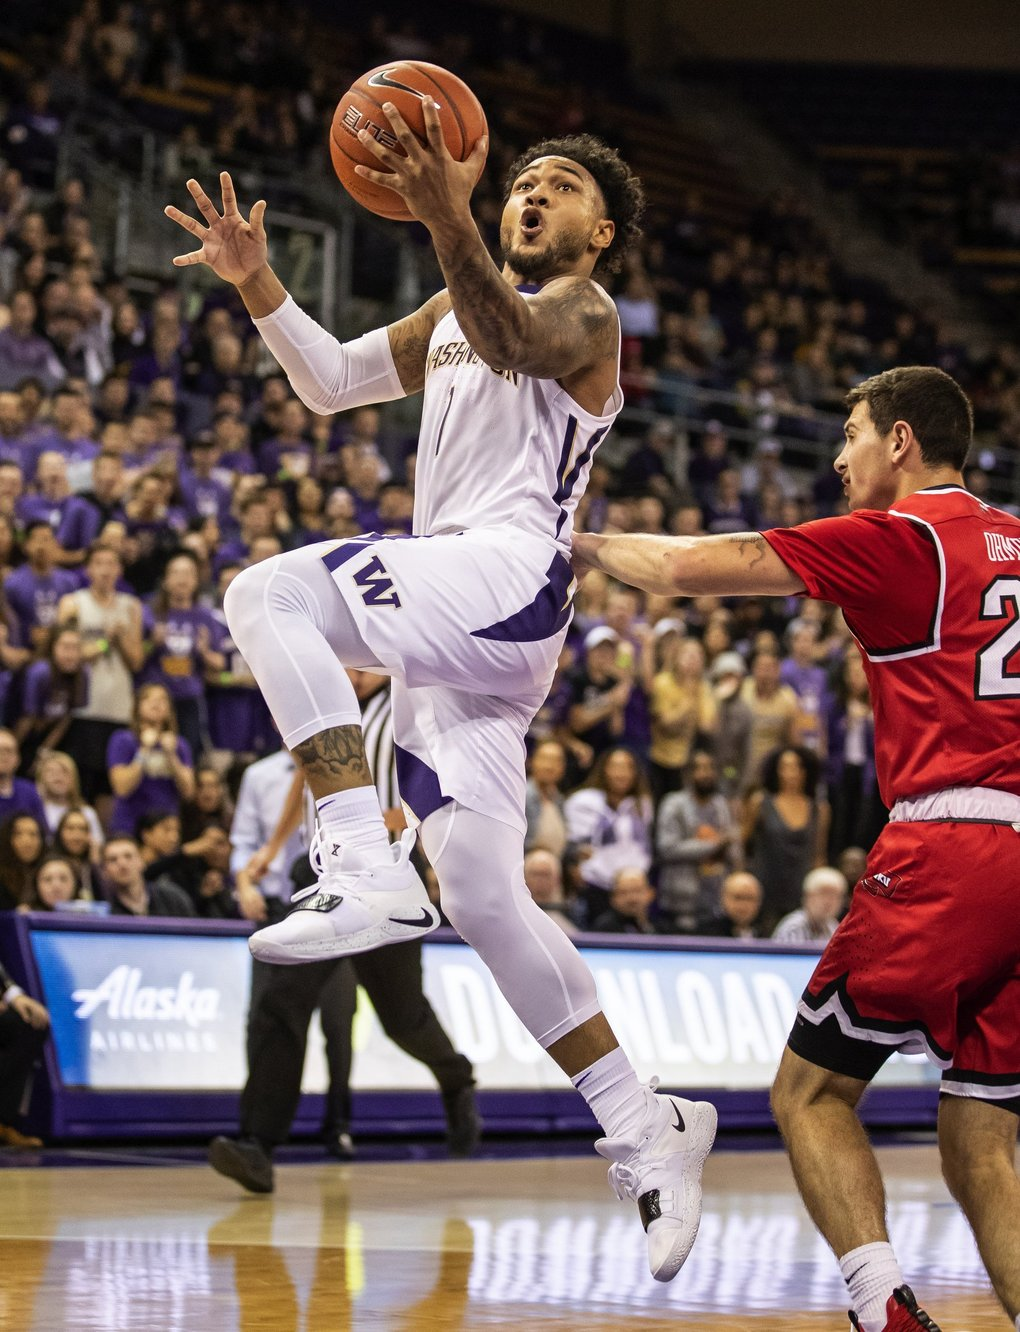 Washington's David Crisp blows by Western Kentucky's Jake Ohmer on his way to the basket in the 2nd half.   (Dean Rutz / The Seattle Times)